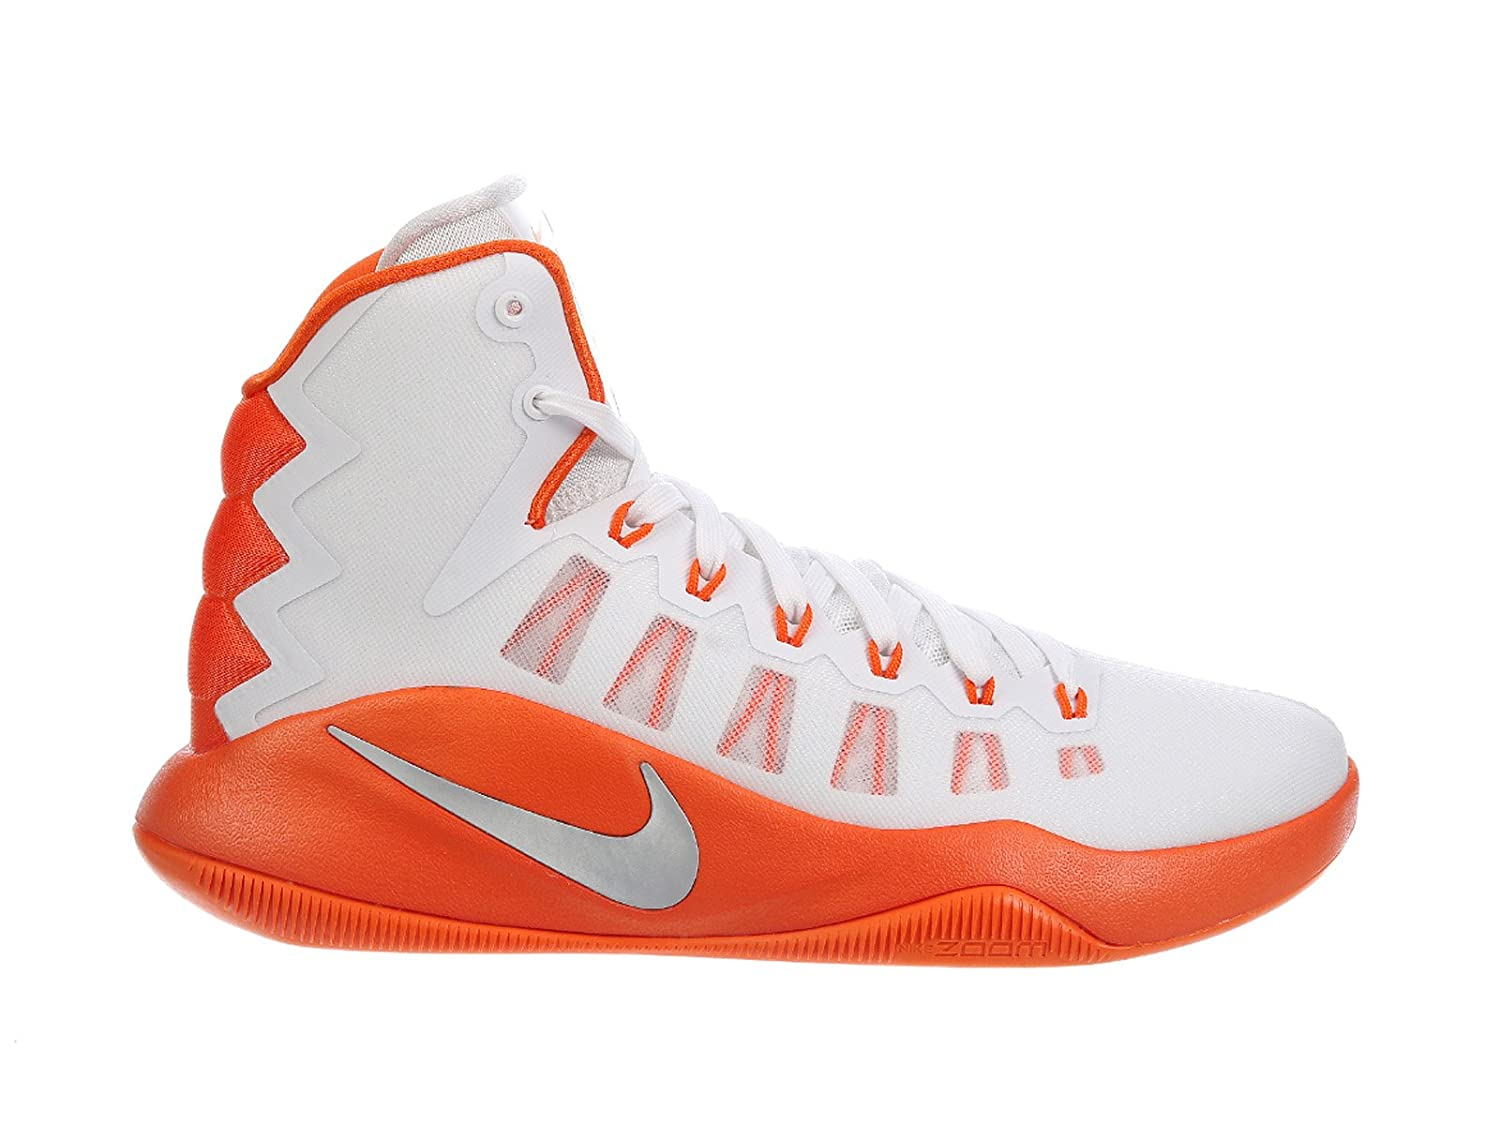 hot sale online 14ebd 2ee75 Nike Mens Hyperdunk 2016 TB Promo Zoom Basketball Shoes White 18 Medium (D)